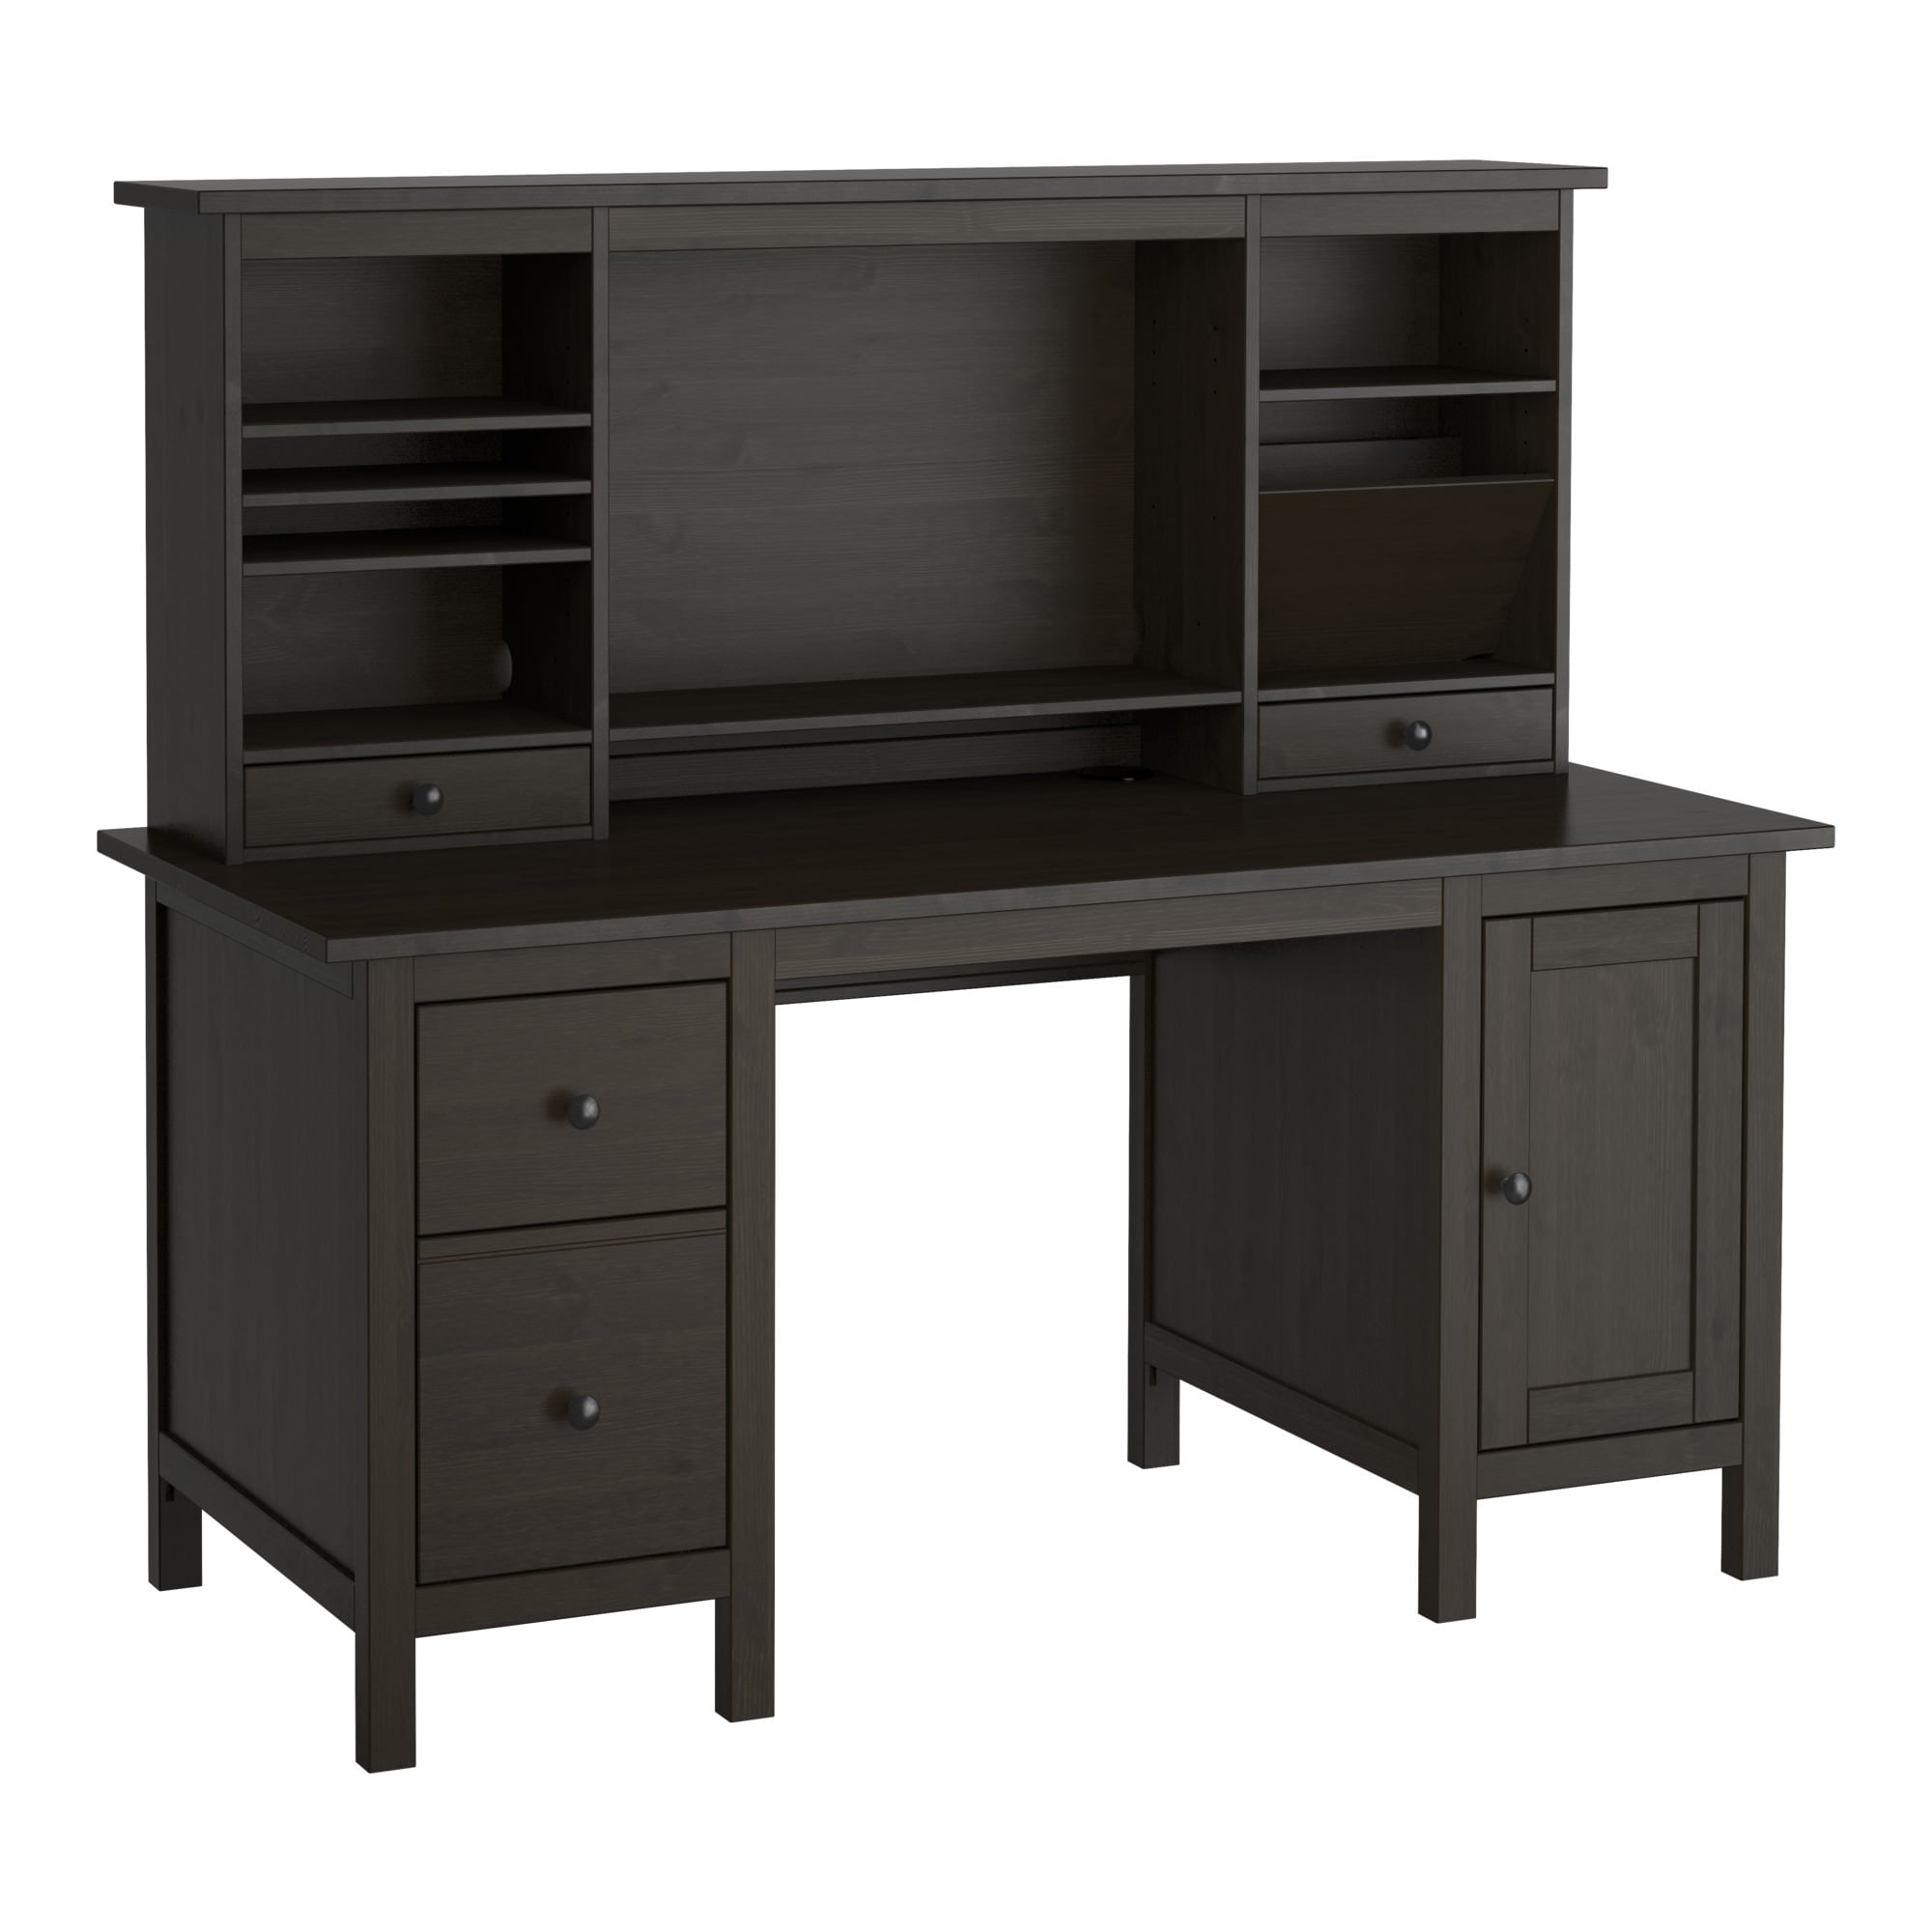 Computer Desk Q5df Hemnes Desk with Add On Unit Black Brown 155 X 137 Cm Ikea